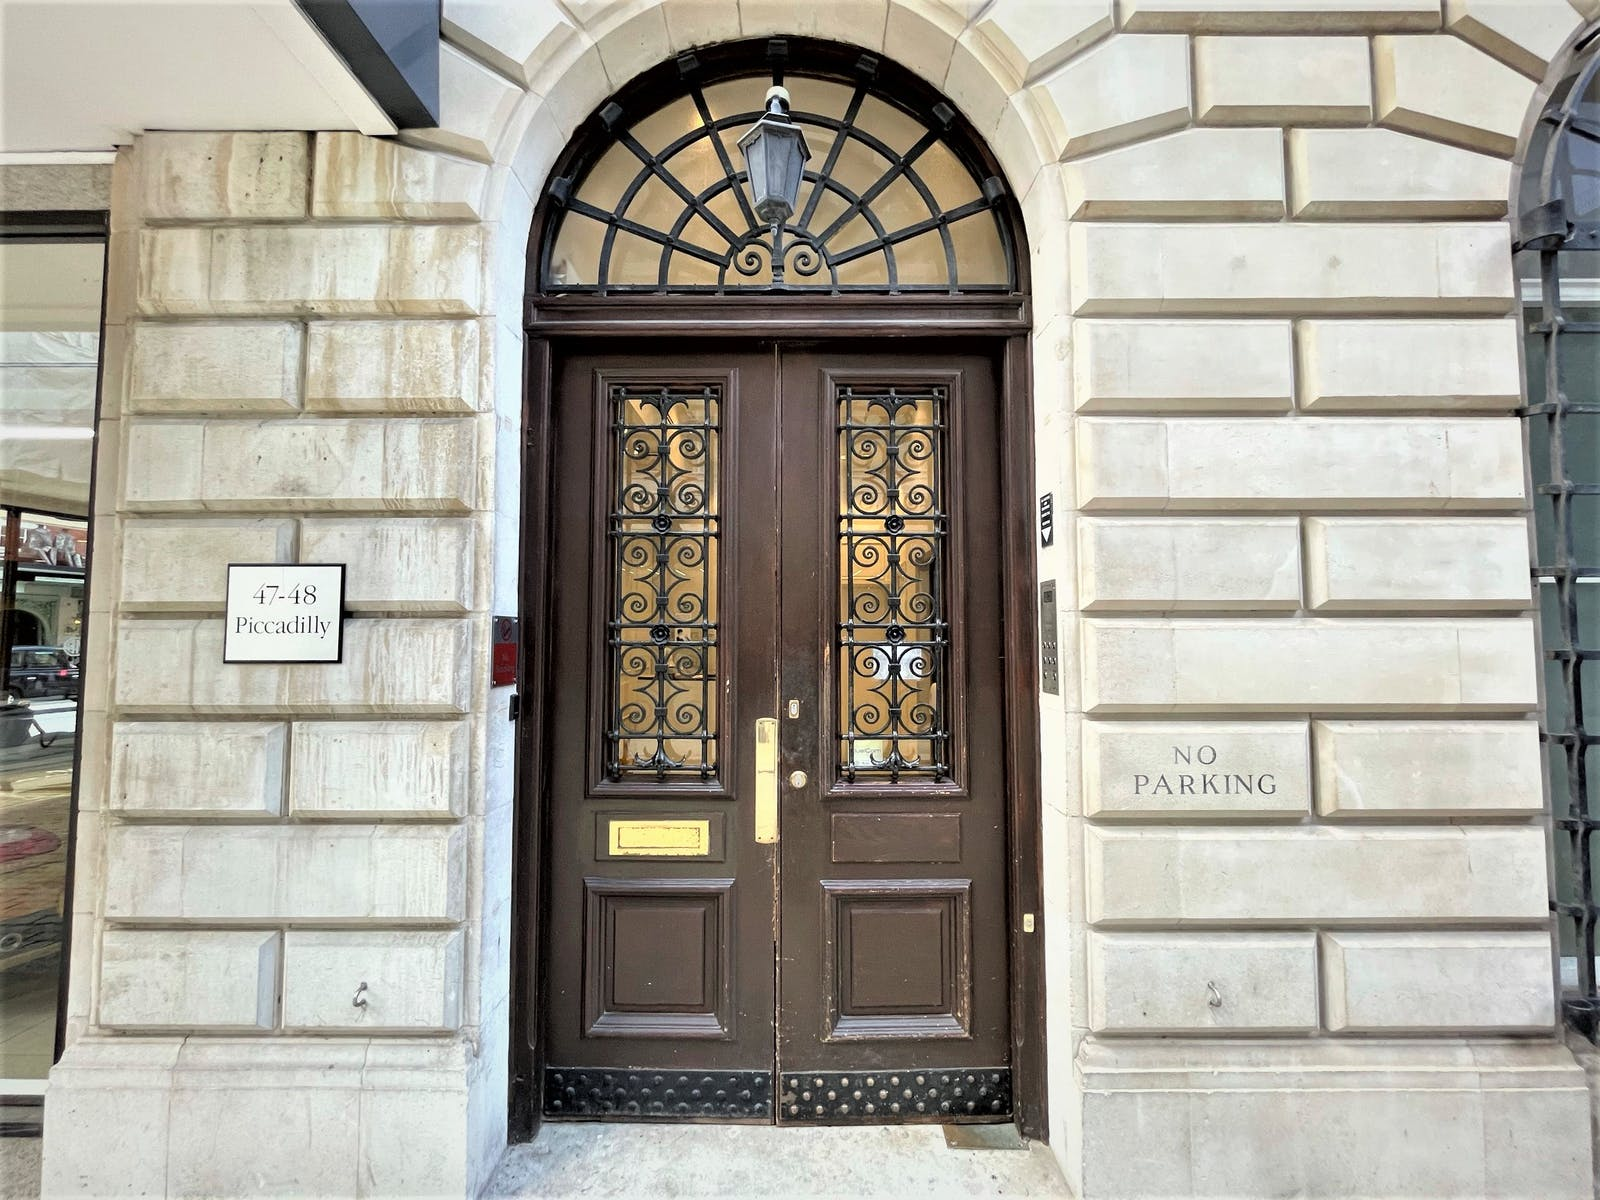 47-48 Piccadilly, London, Office To Let - Building Entrance